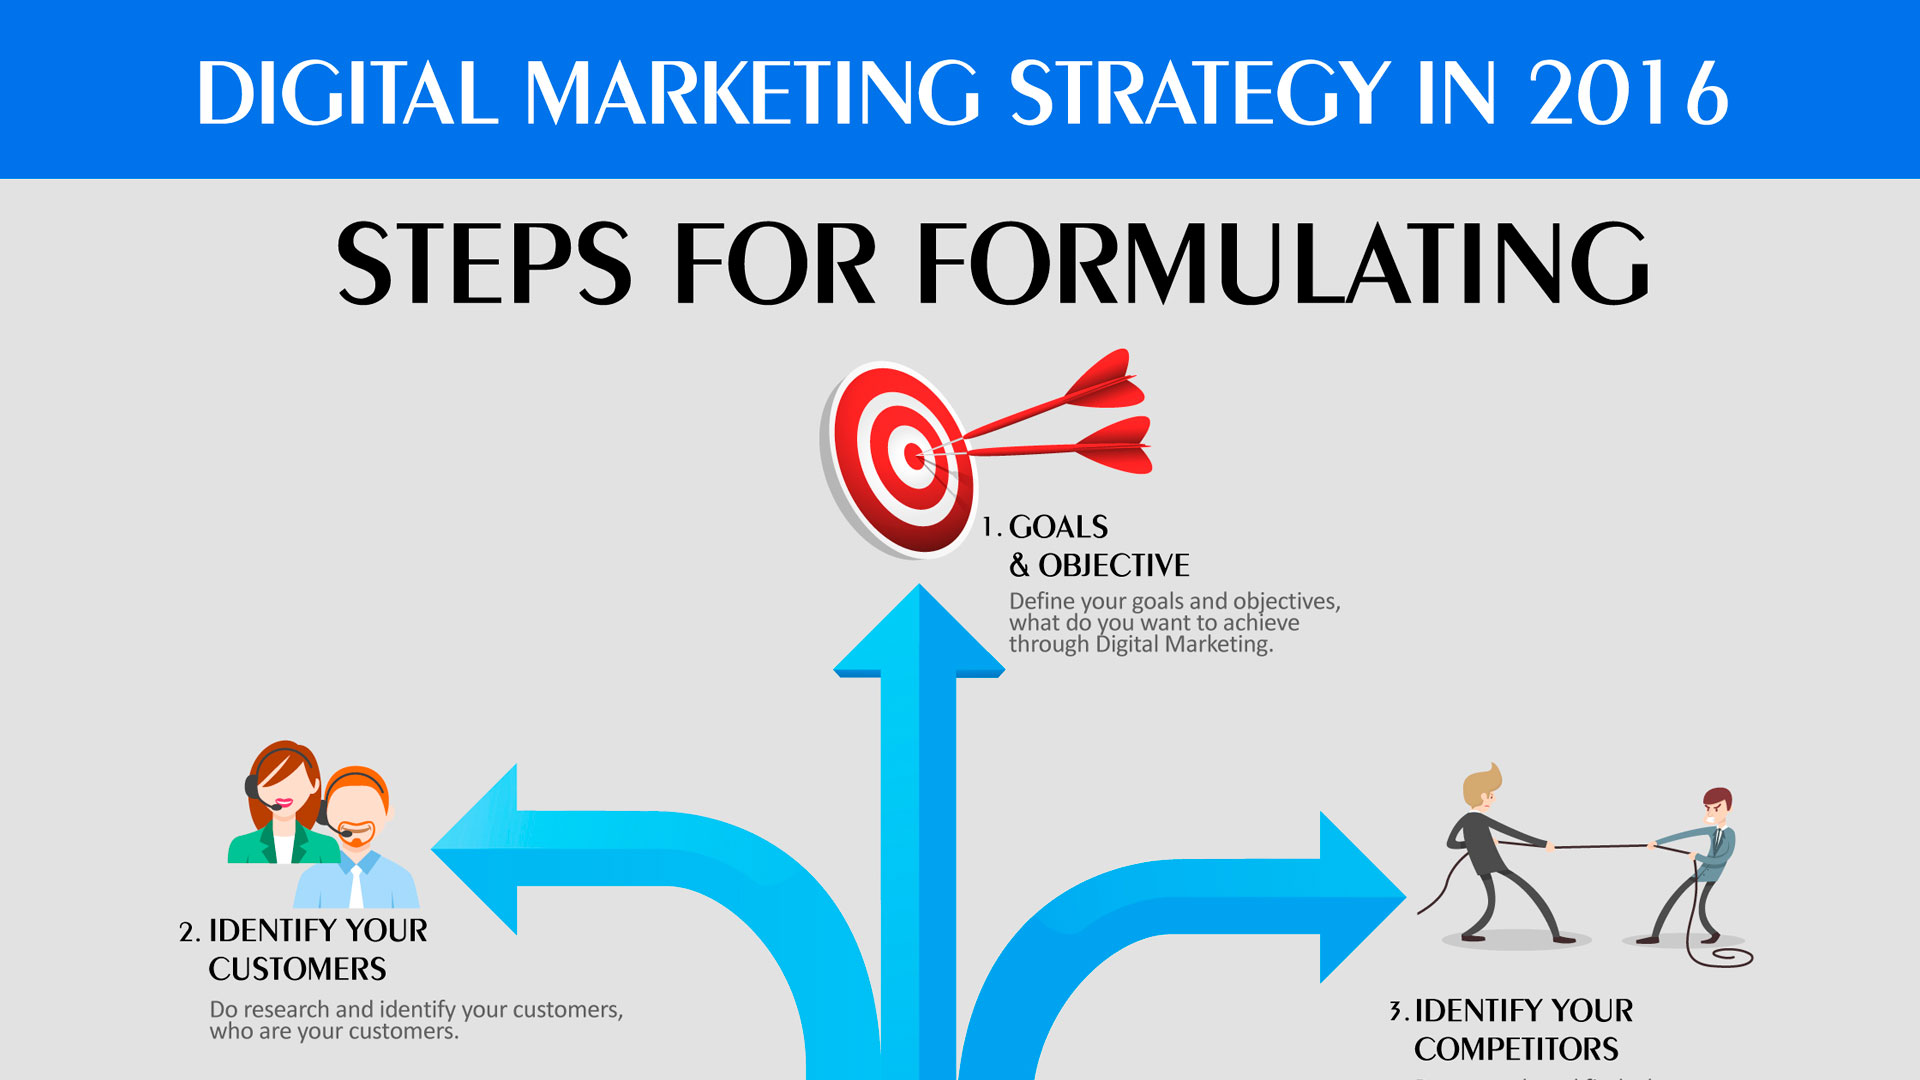 Infographic-on-Digital-Marketing-Strategy-in-20161.jpg